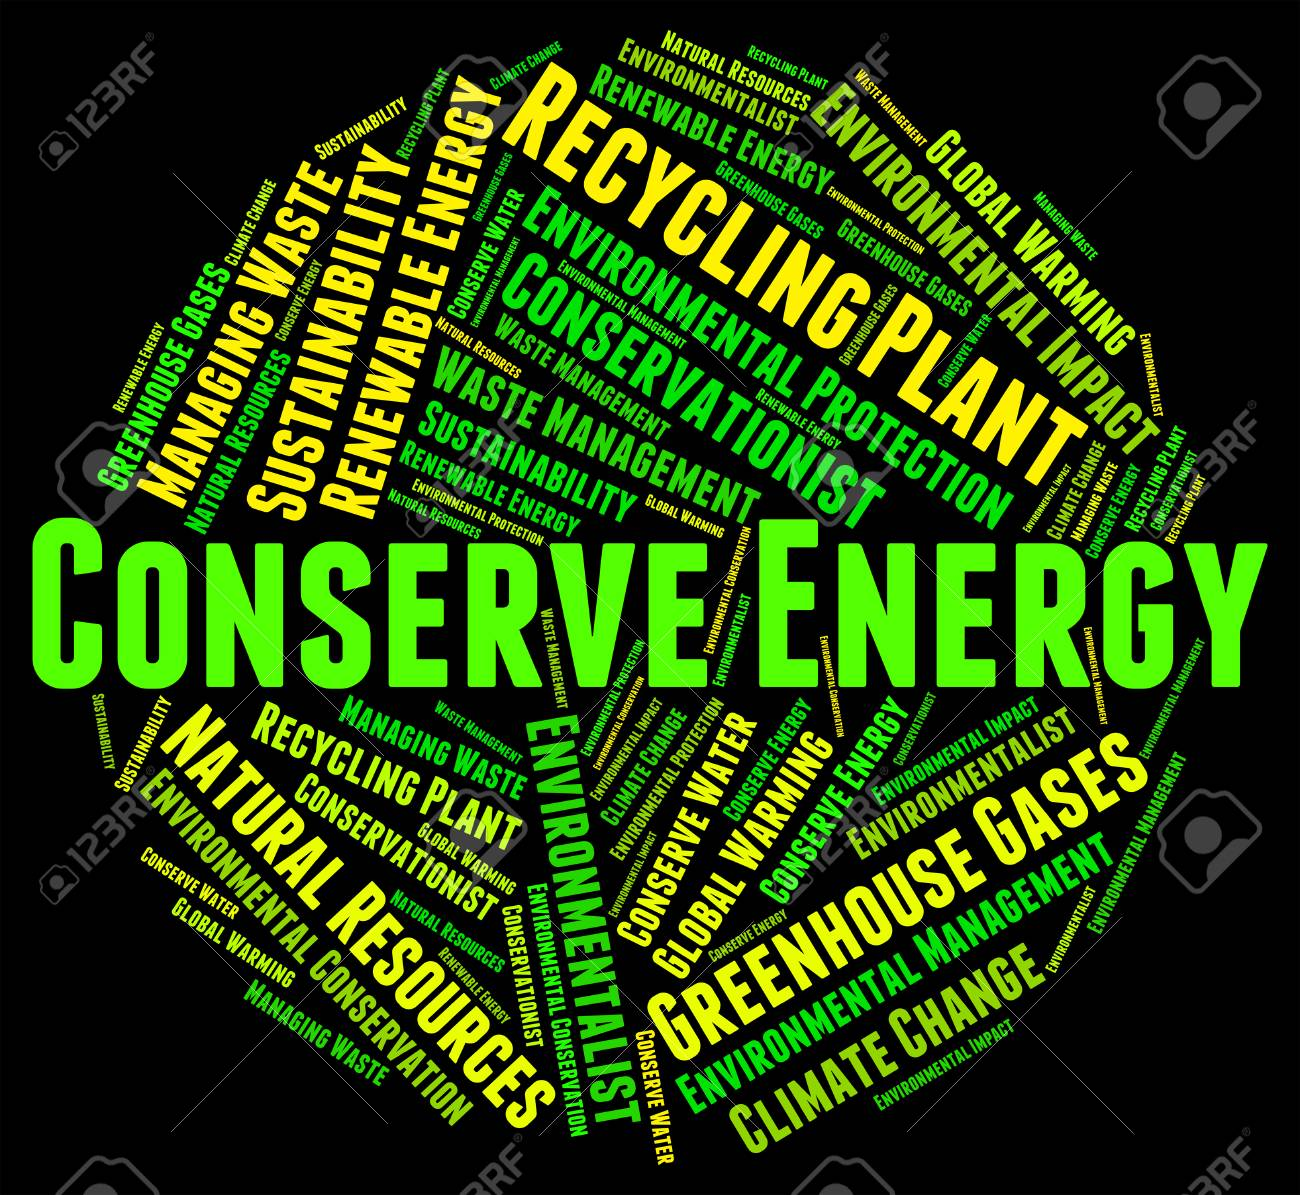 Image result for Preserve Energy